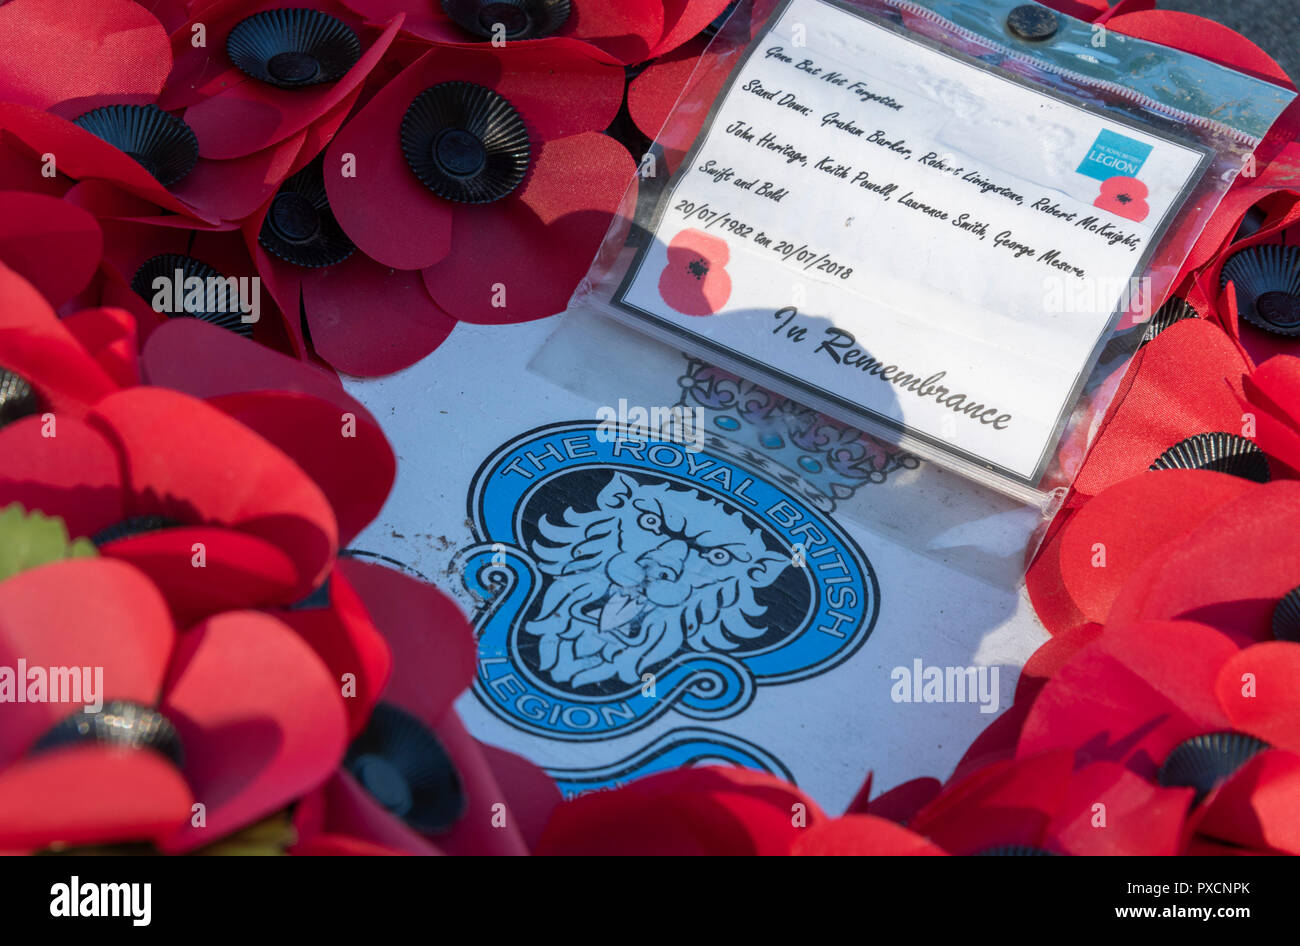 The Royal British Legion Poppy wreath tribute at the bandstand Regent's Park London UK to those who died terrorist attack July 1982 - Stock Image